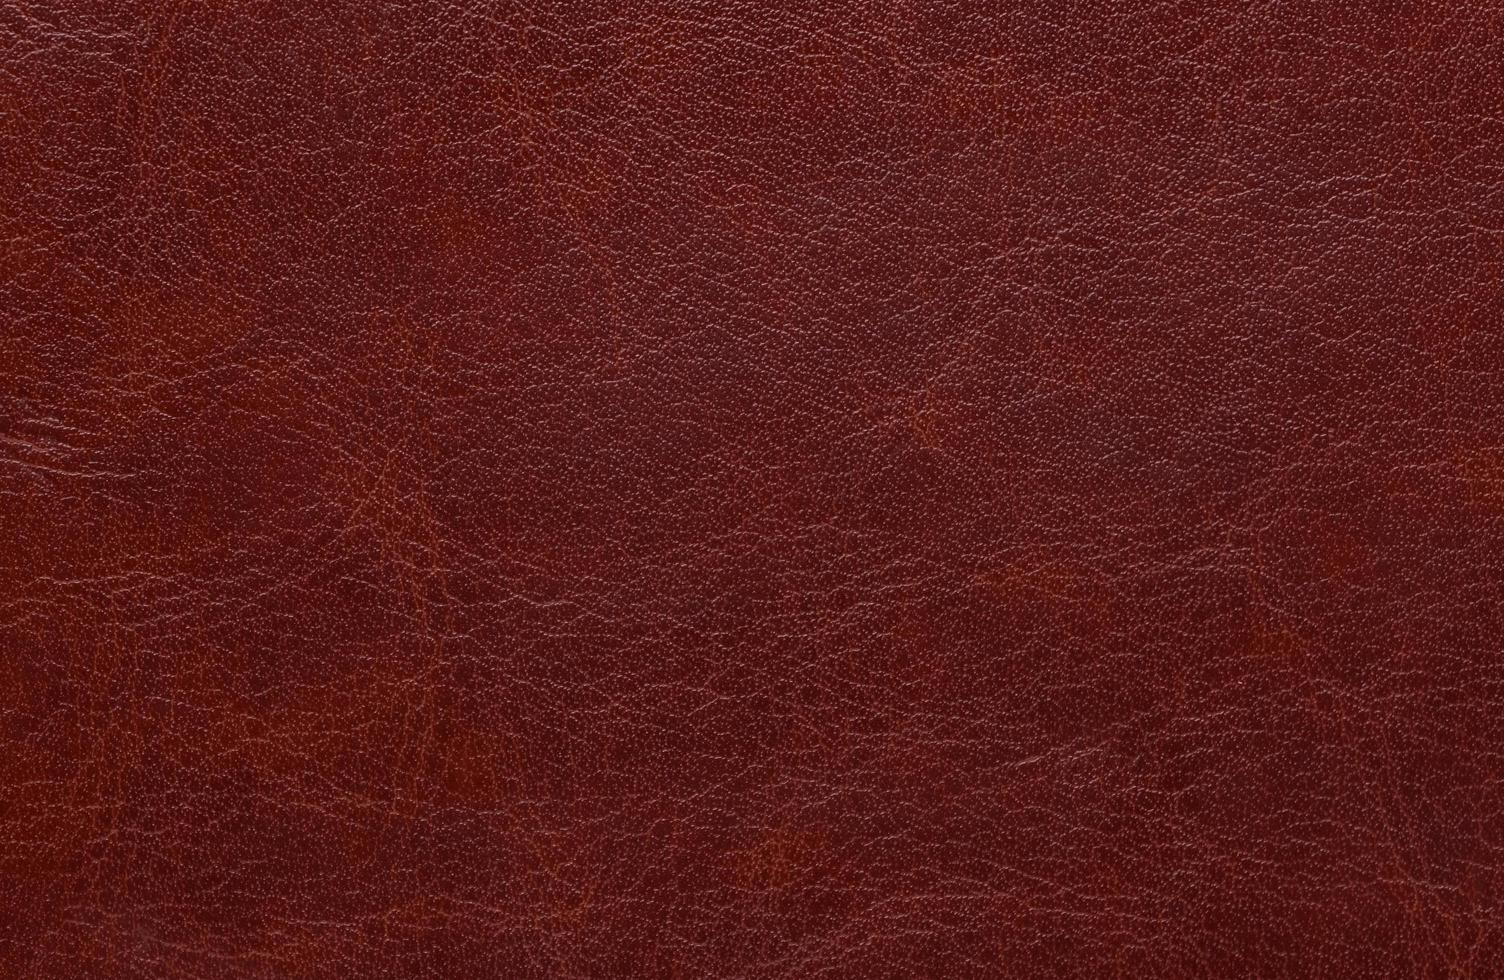 Full frame shot of red leather background photo